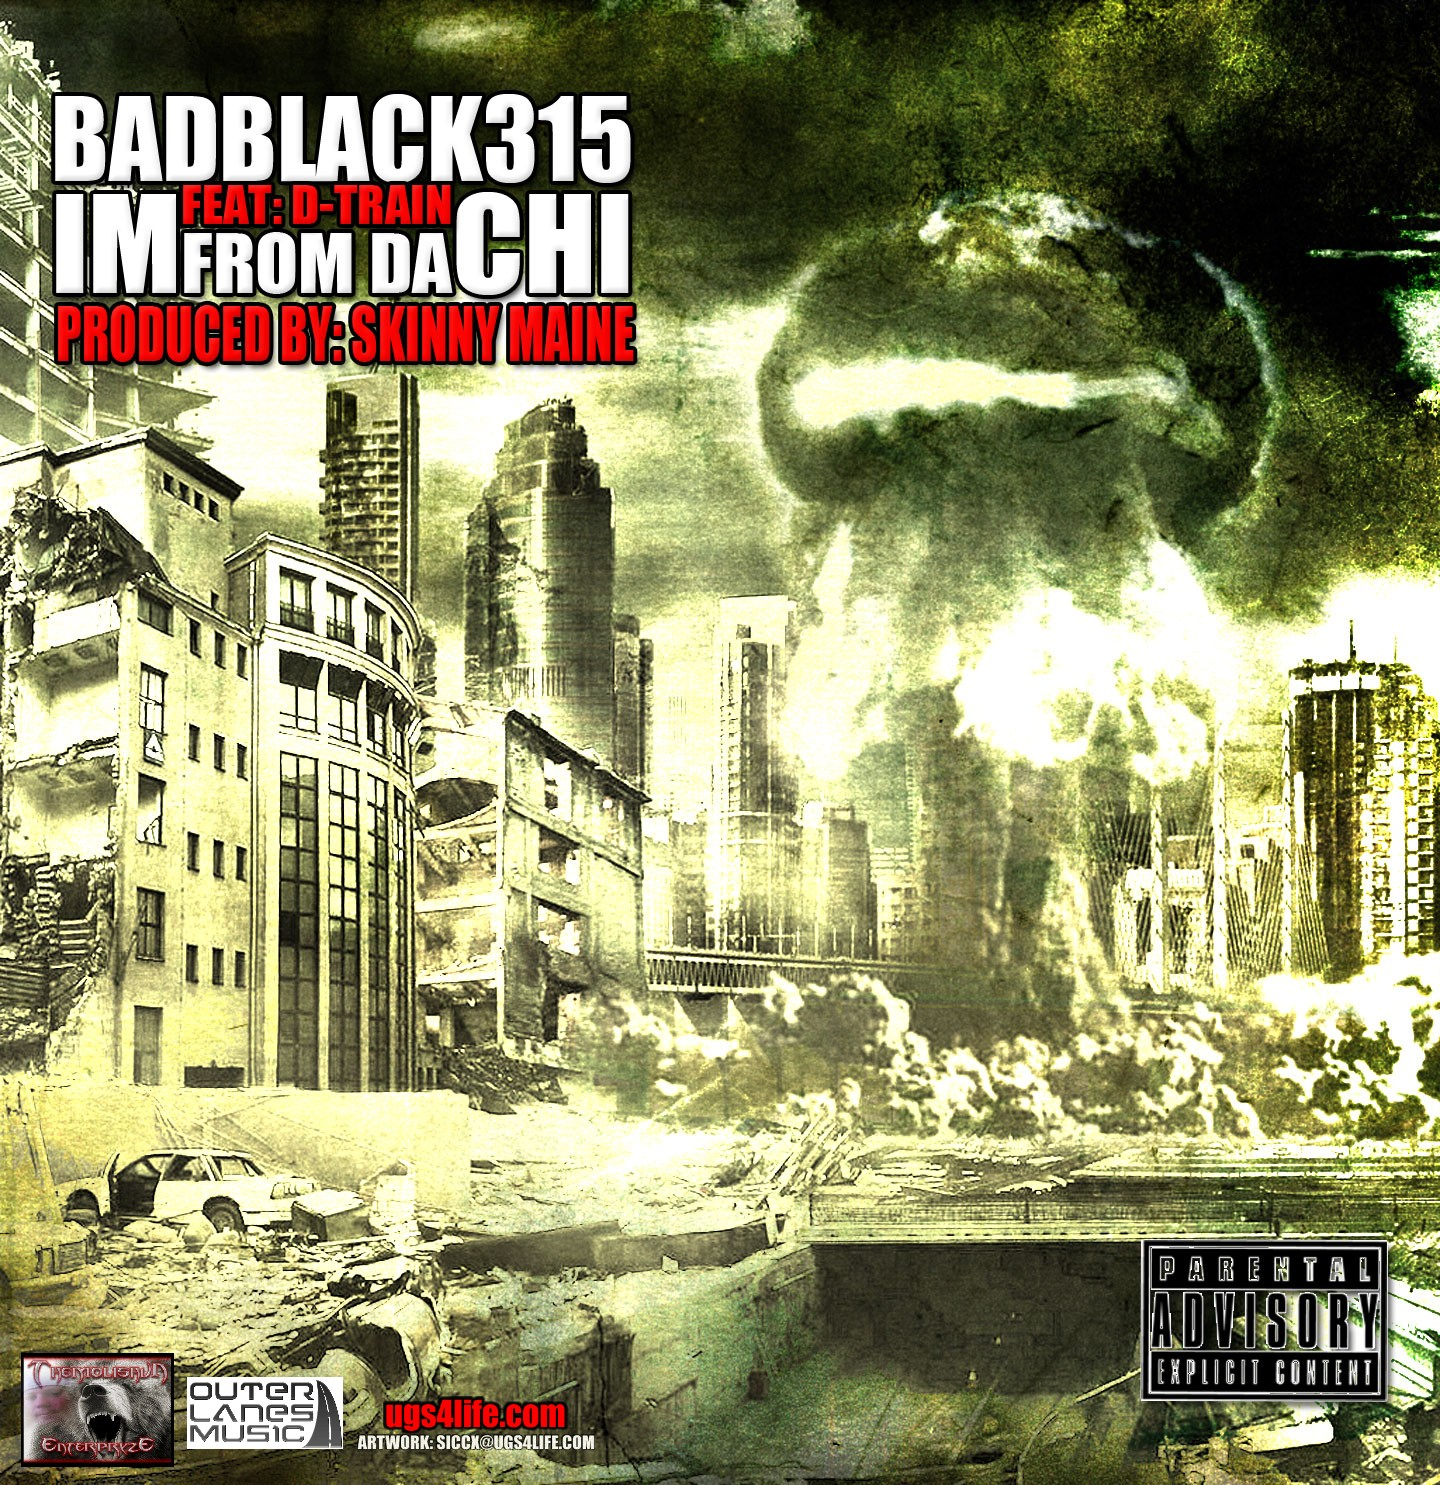 IM FROM DA CHI-BADBLACK315 feat D-TRAIN